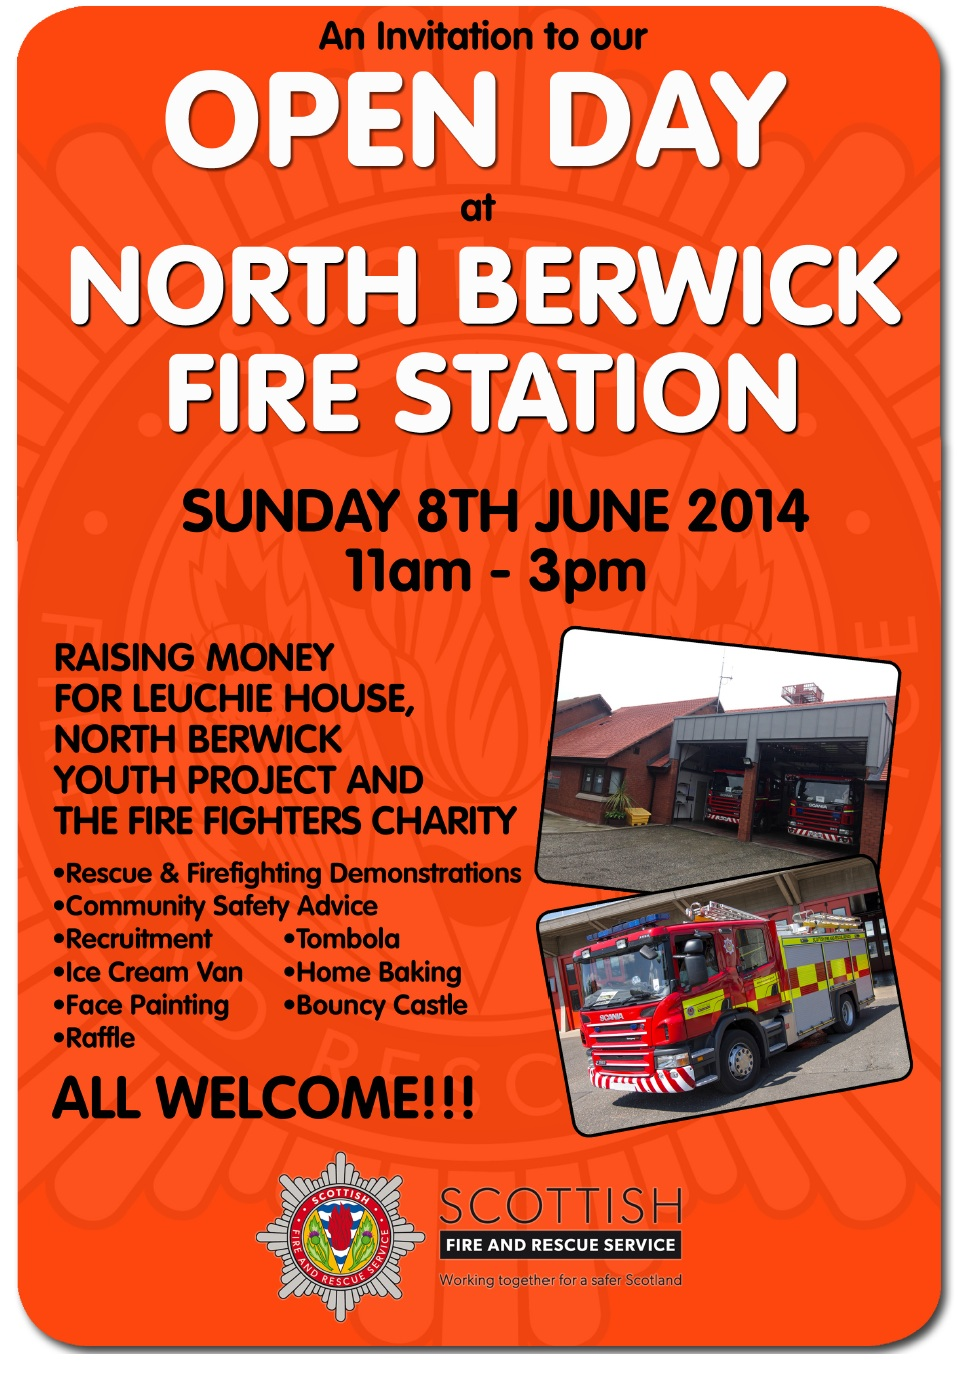 North Berwick fire station open day